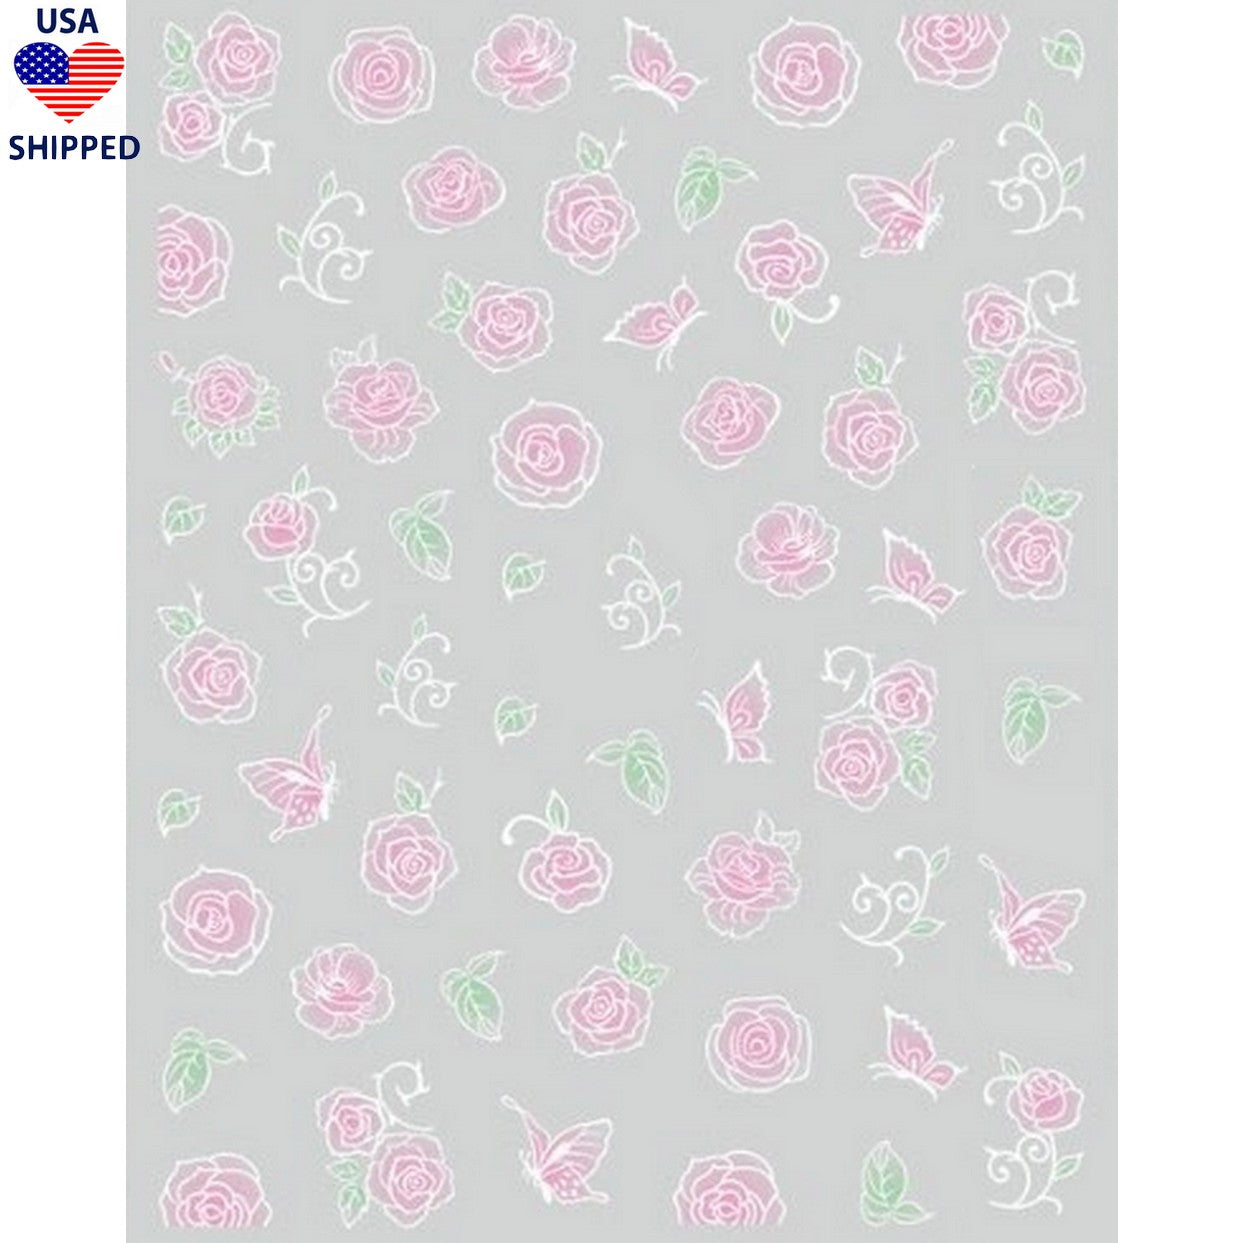 (USA) Floral Blush Roses Nail Stickers